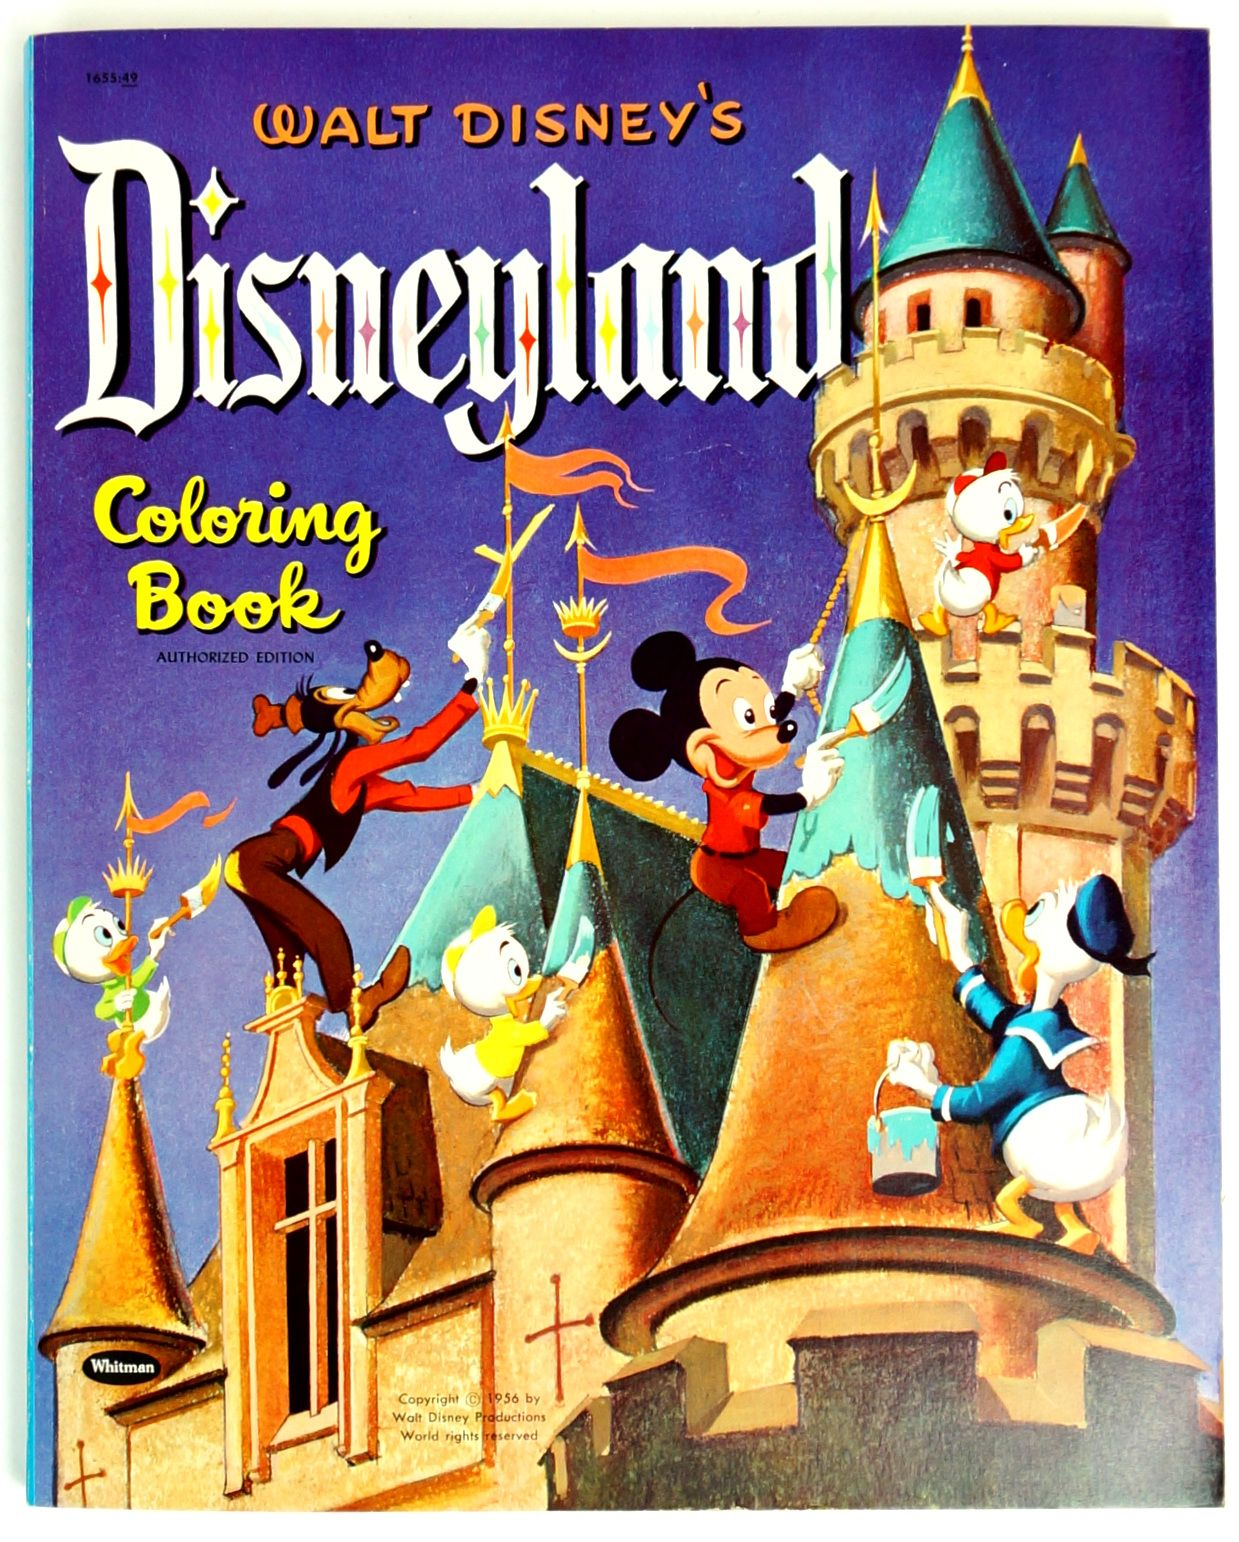 Rare Walt Disneys Disneyland Coloring Book 1956 VGC